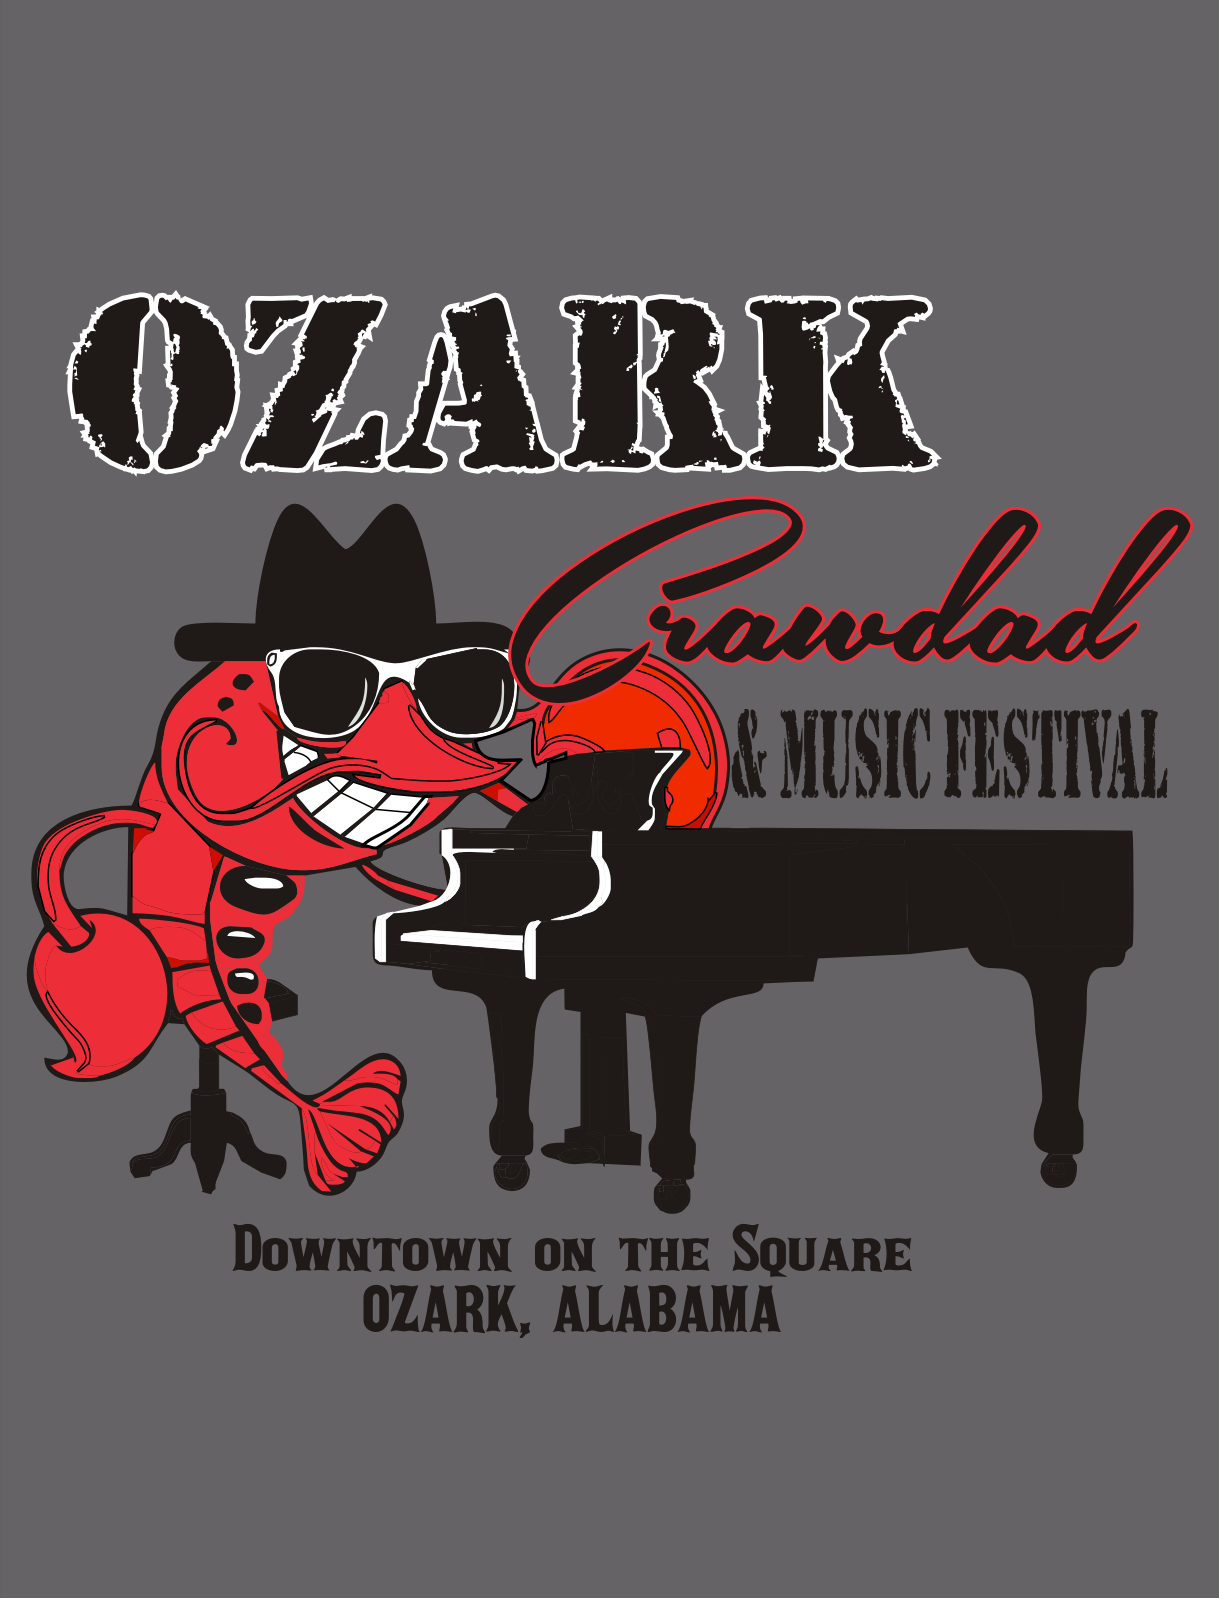 2021 Ozark Crawdad and Music Festival